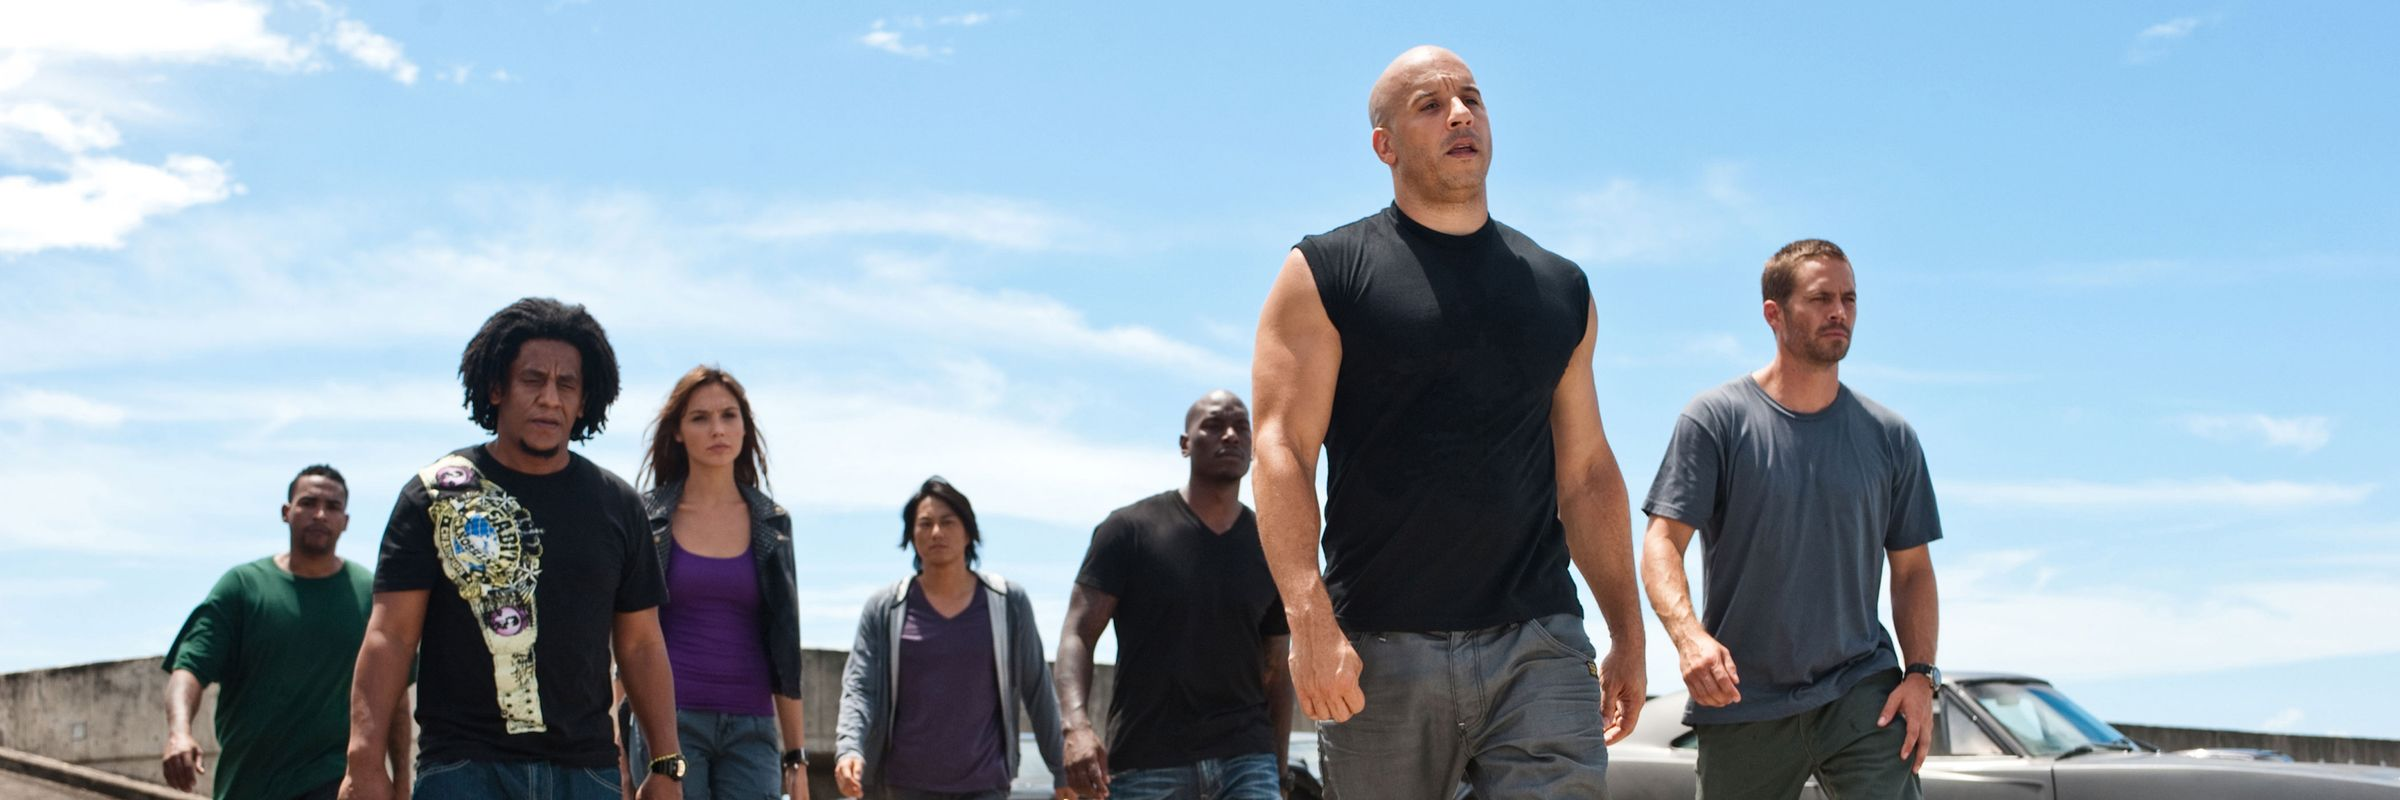 fast five full movie in english watch online free